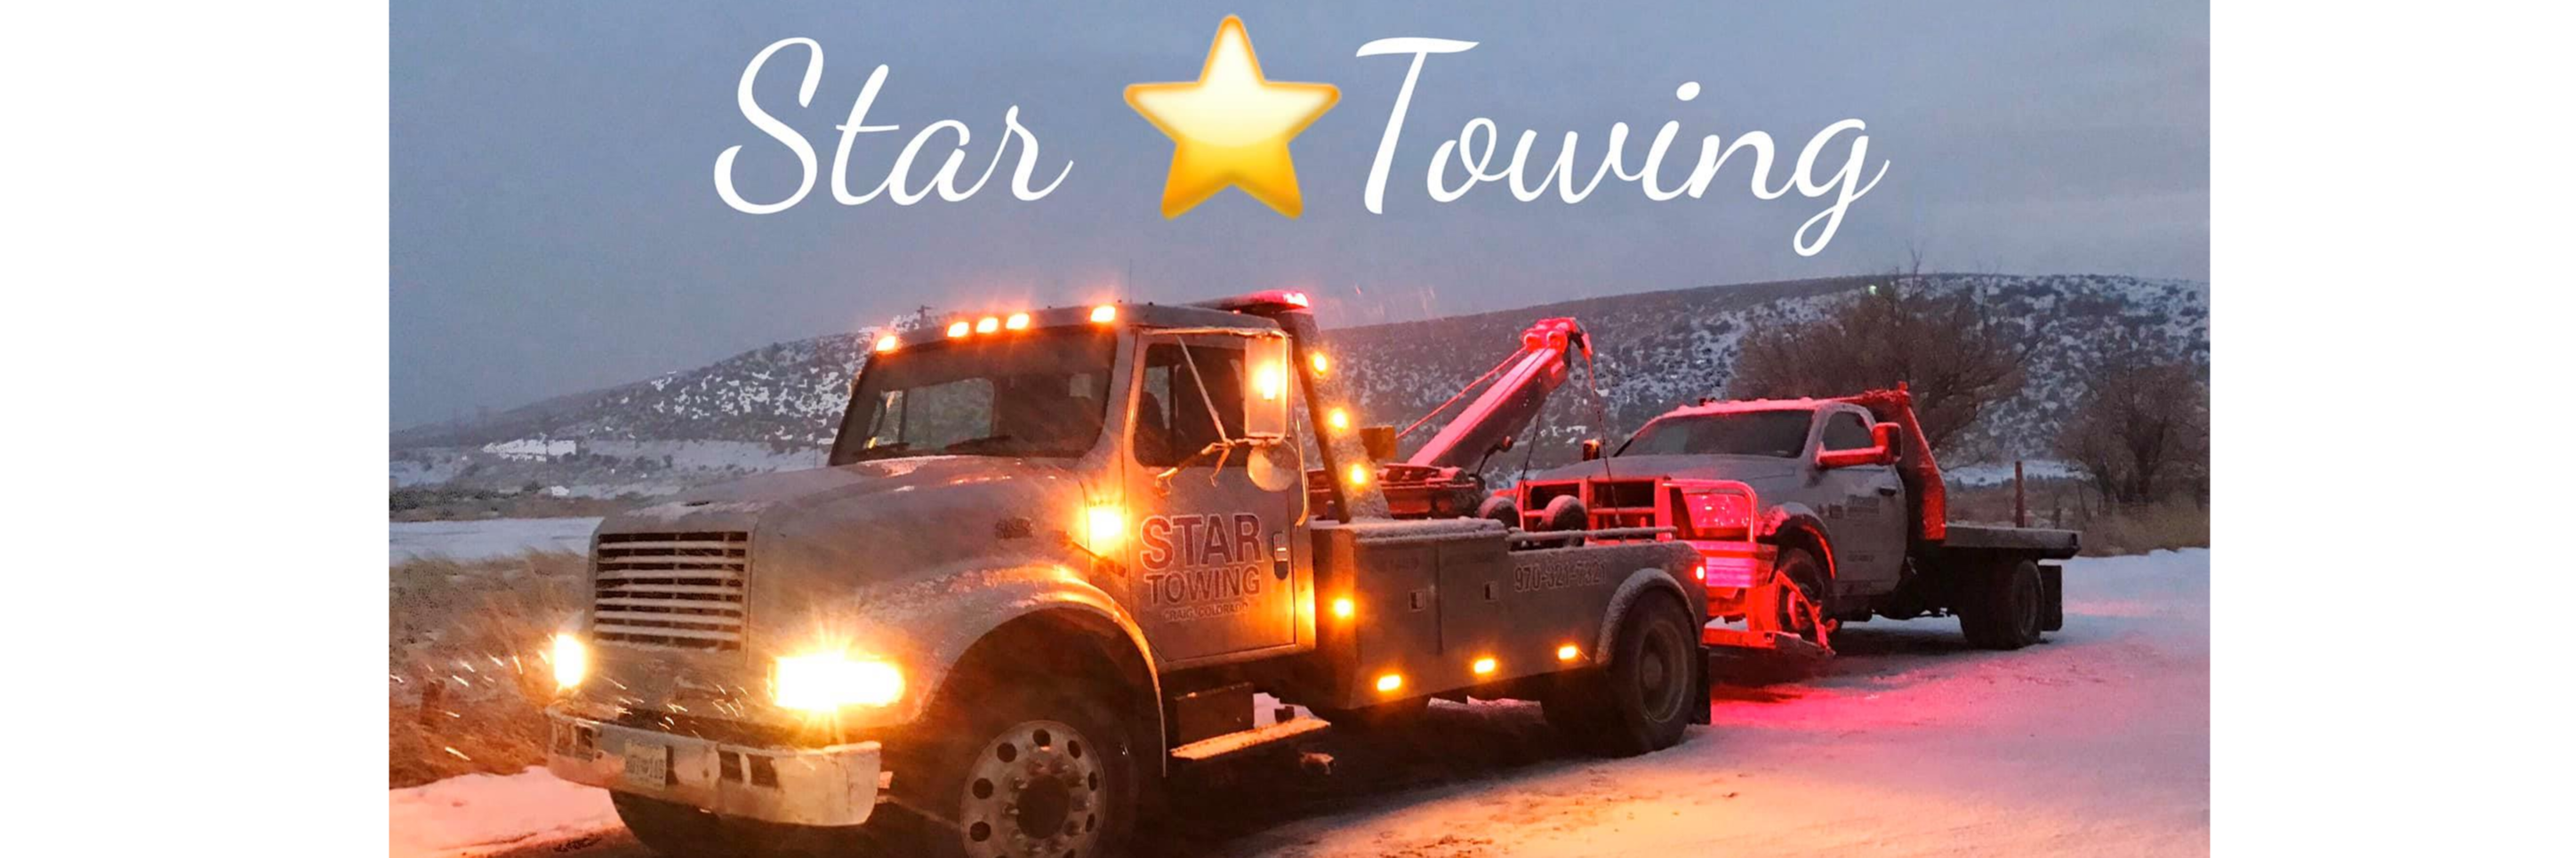 Star Towing and Recovery Towing.com Profile Banner